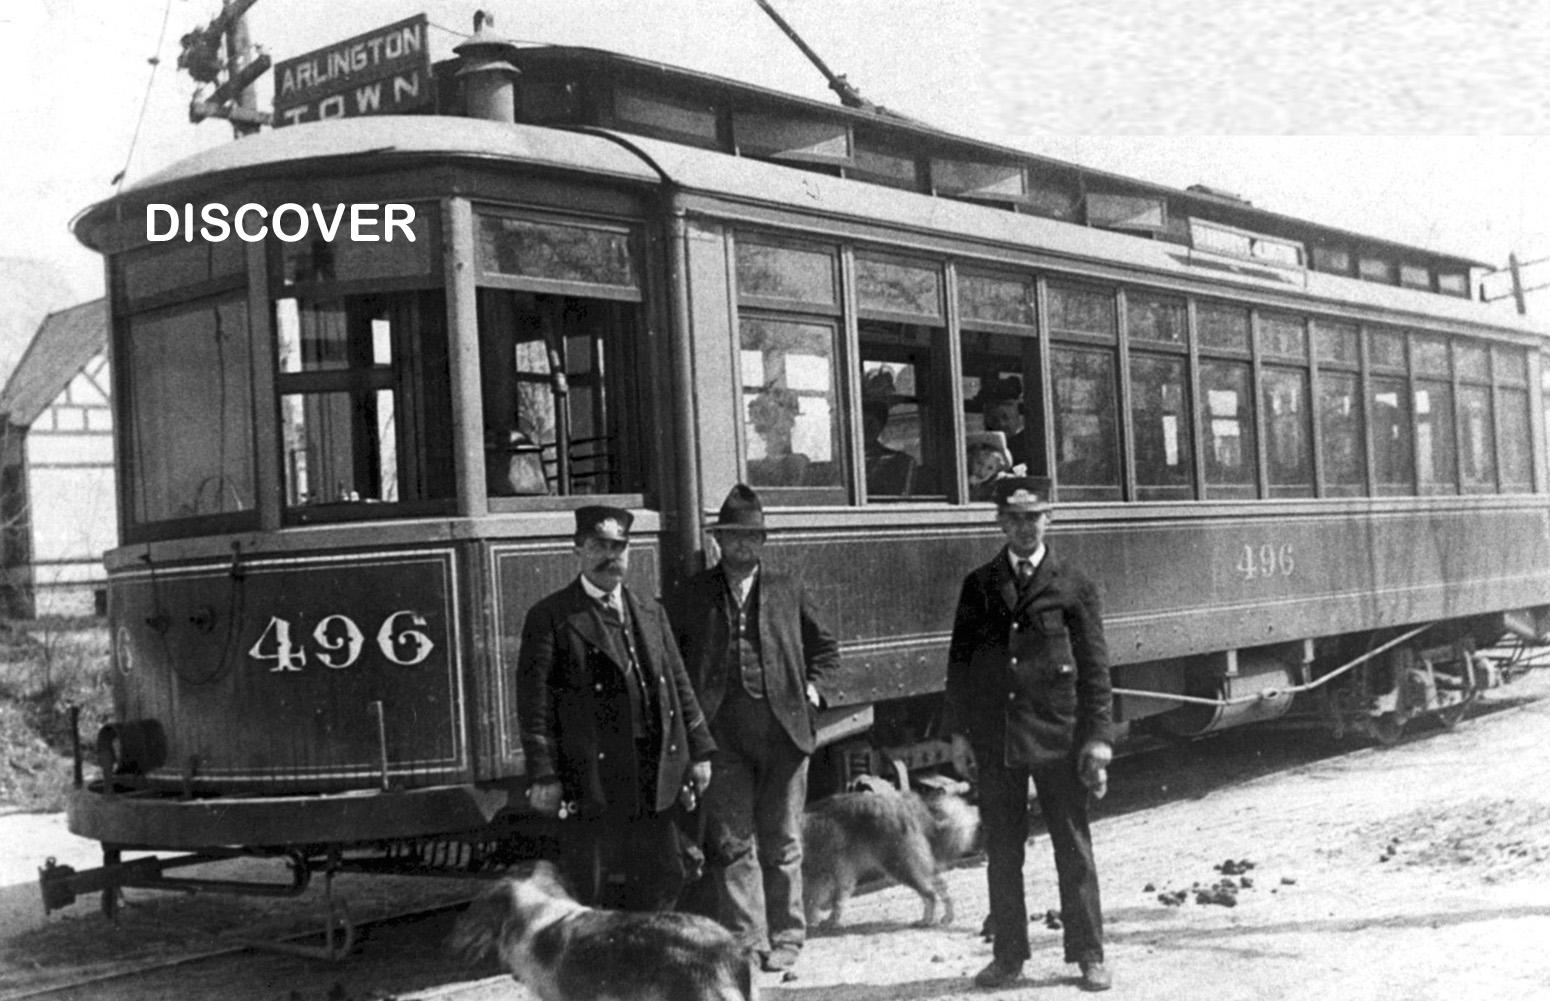 DISCOVER Trolley photo_edited-1.jpg